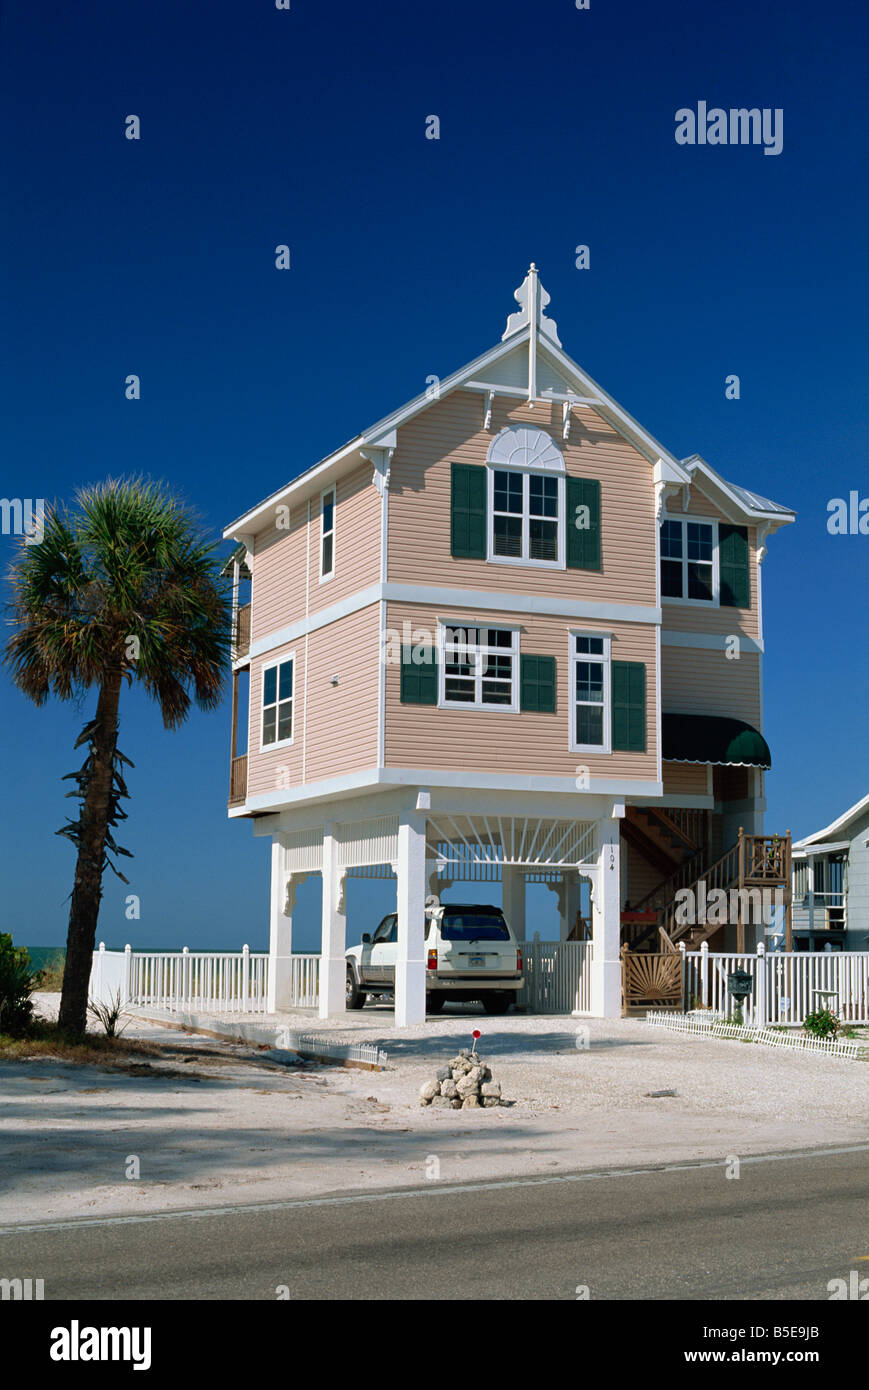 A modern house by the beach in the Gulf Coast town of Bradenton